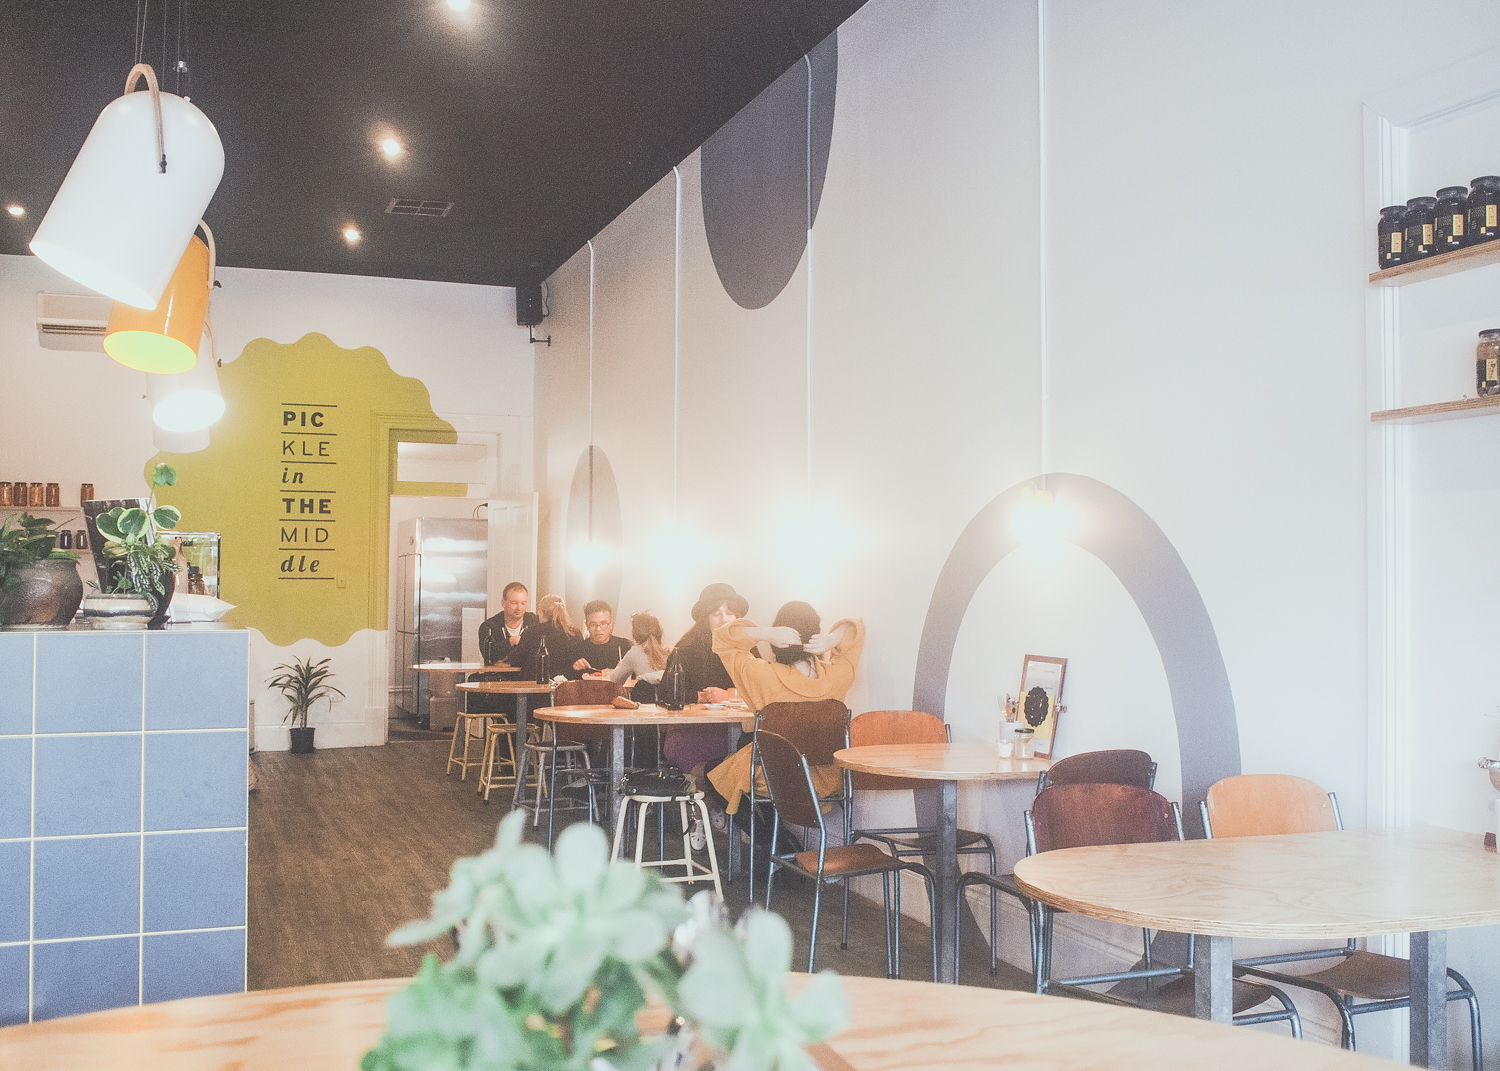 pickle-in-the-middle-cafe-interior.jpg